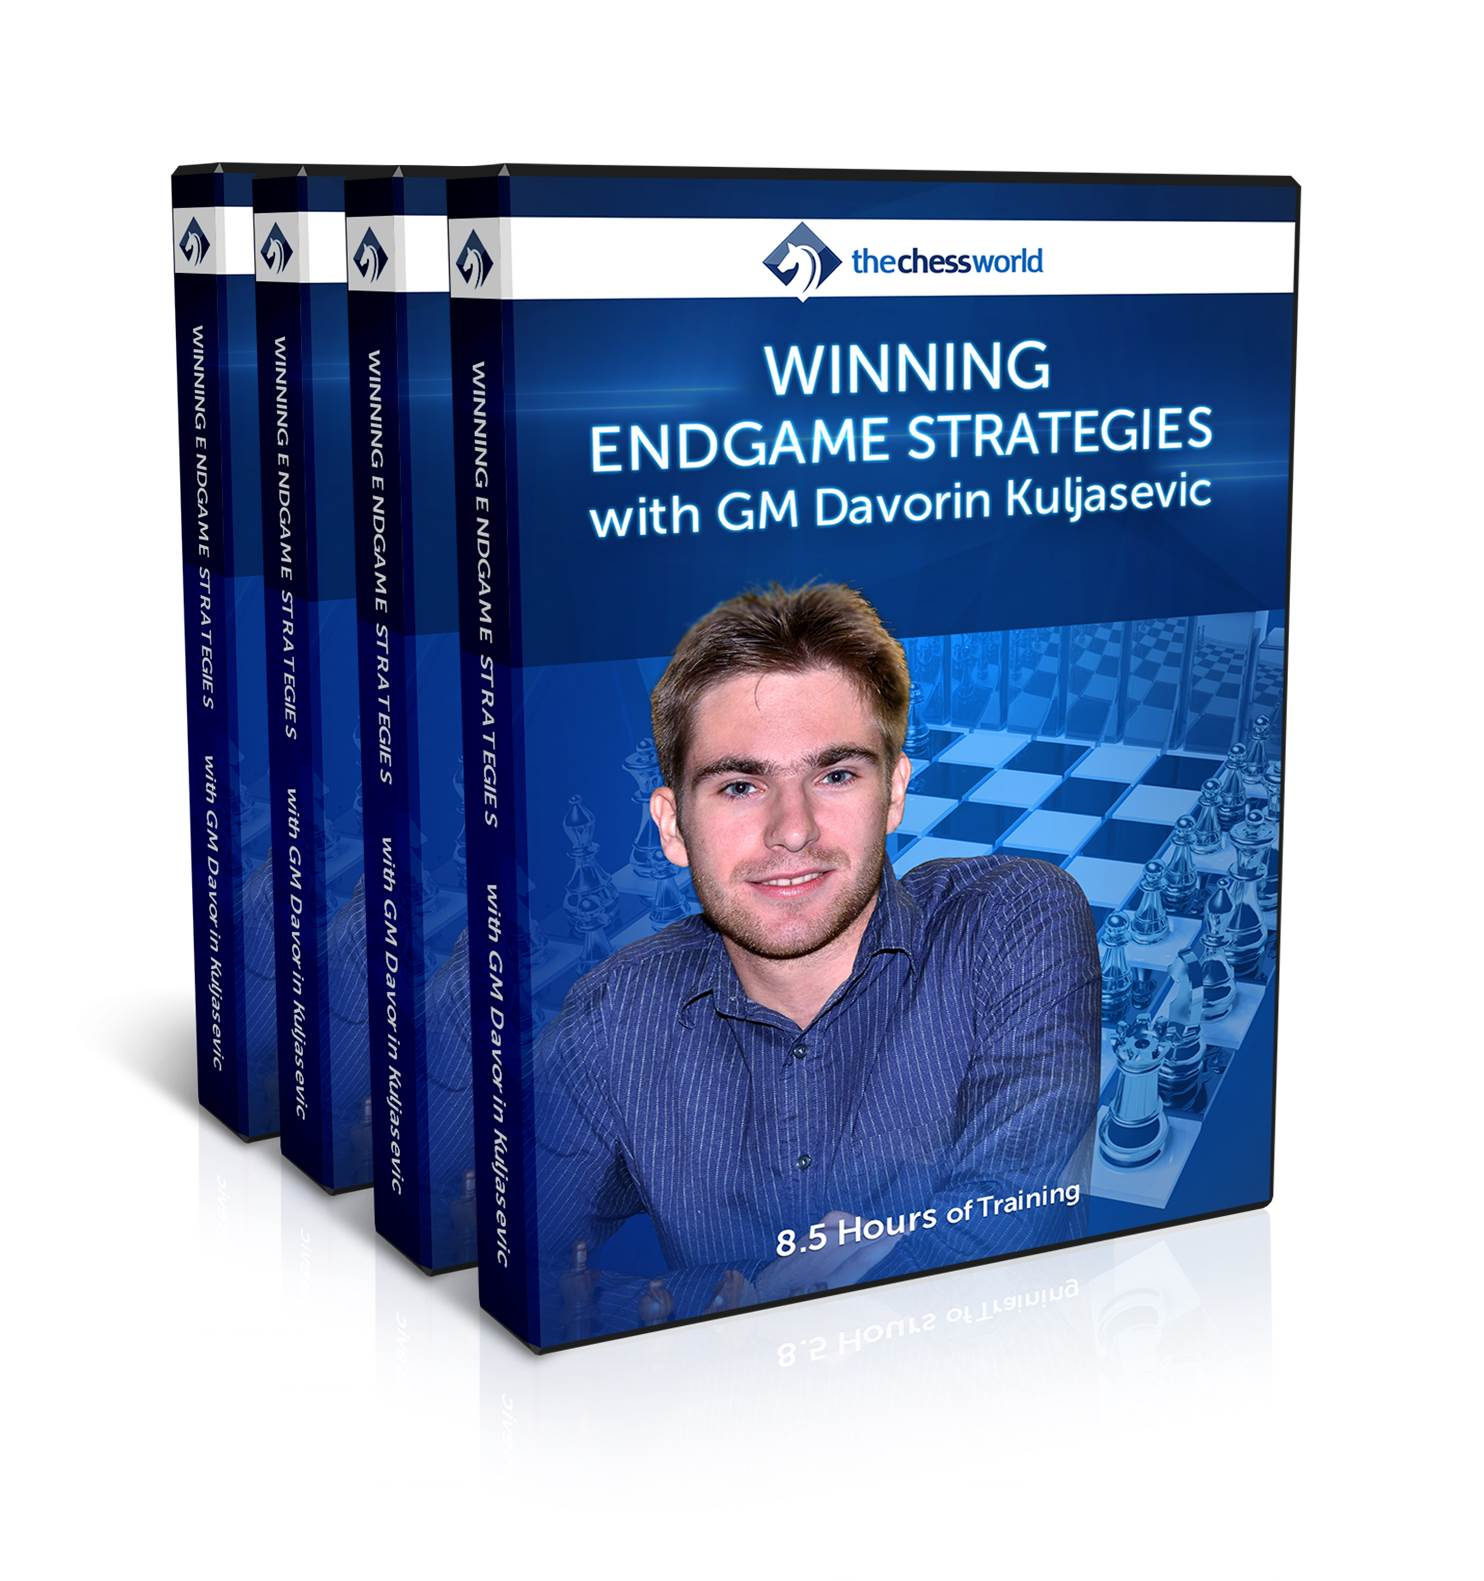 WINNING Endgame Strategies with GM Davorin Kuljasevic Winning-endgame-strategies-gm-kuljasevic